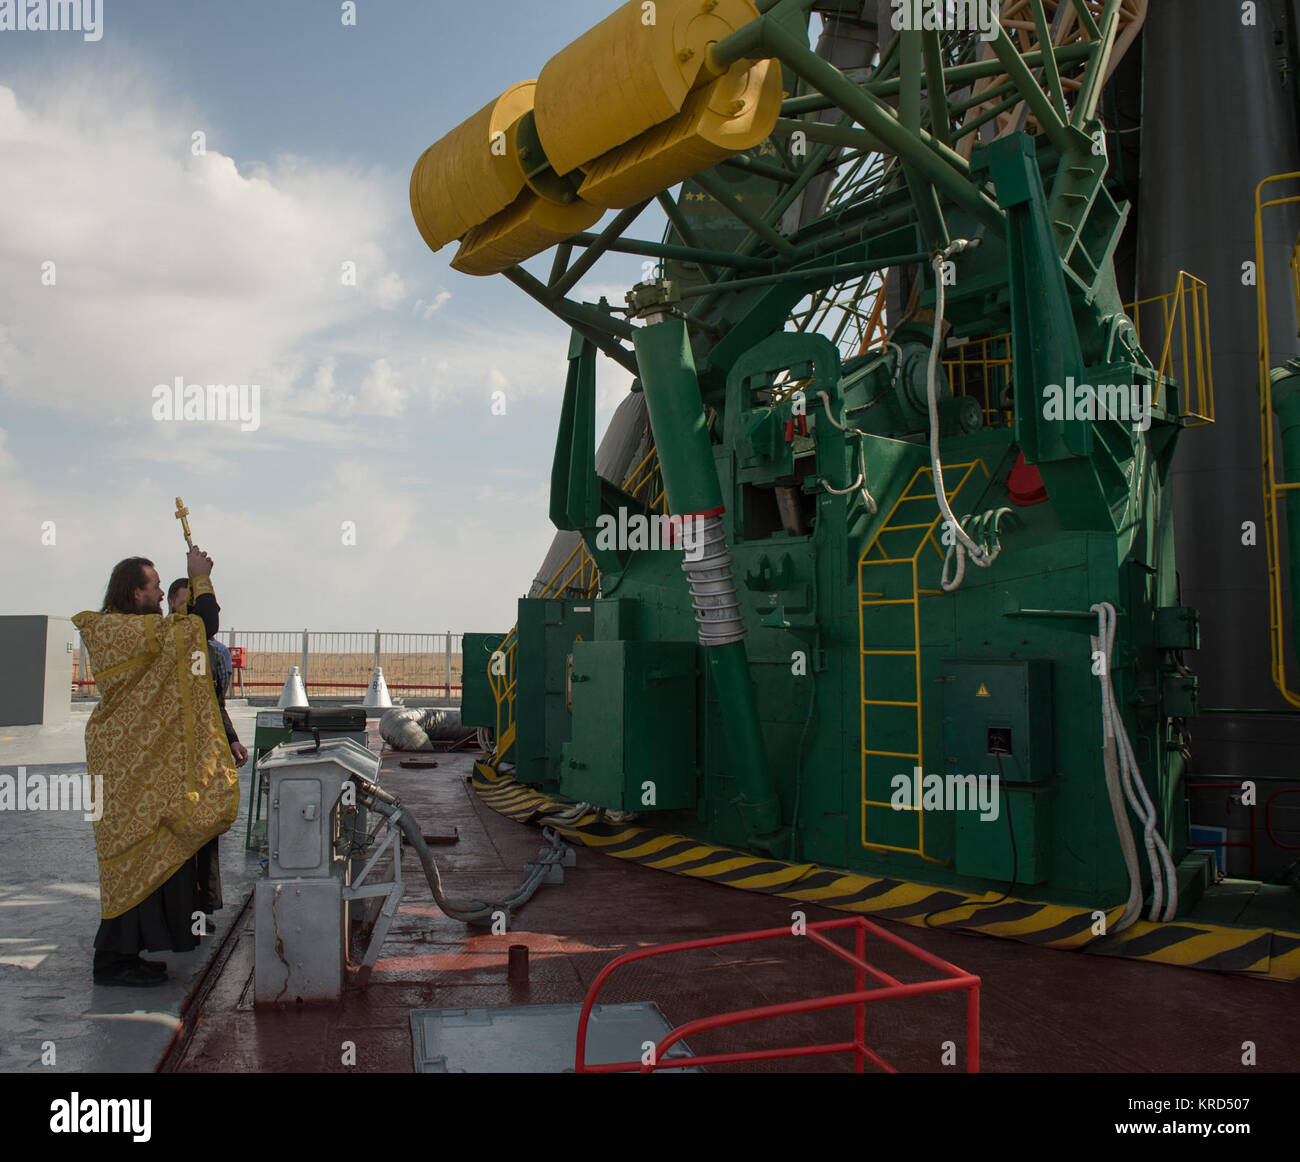 An Orthodox priest blesses the Soyuz rocket at the Baikonur Cosmodrome Launch pad on Tuesday, Sept. 24, 2013 in - Stock Image